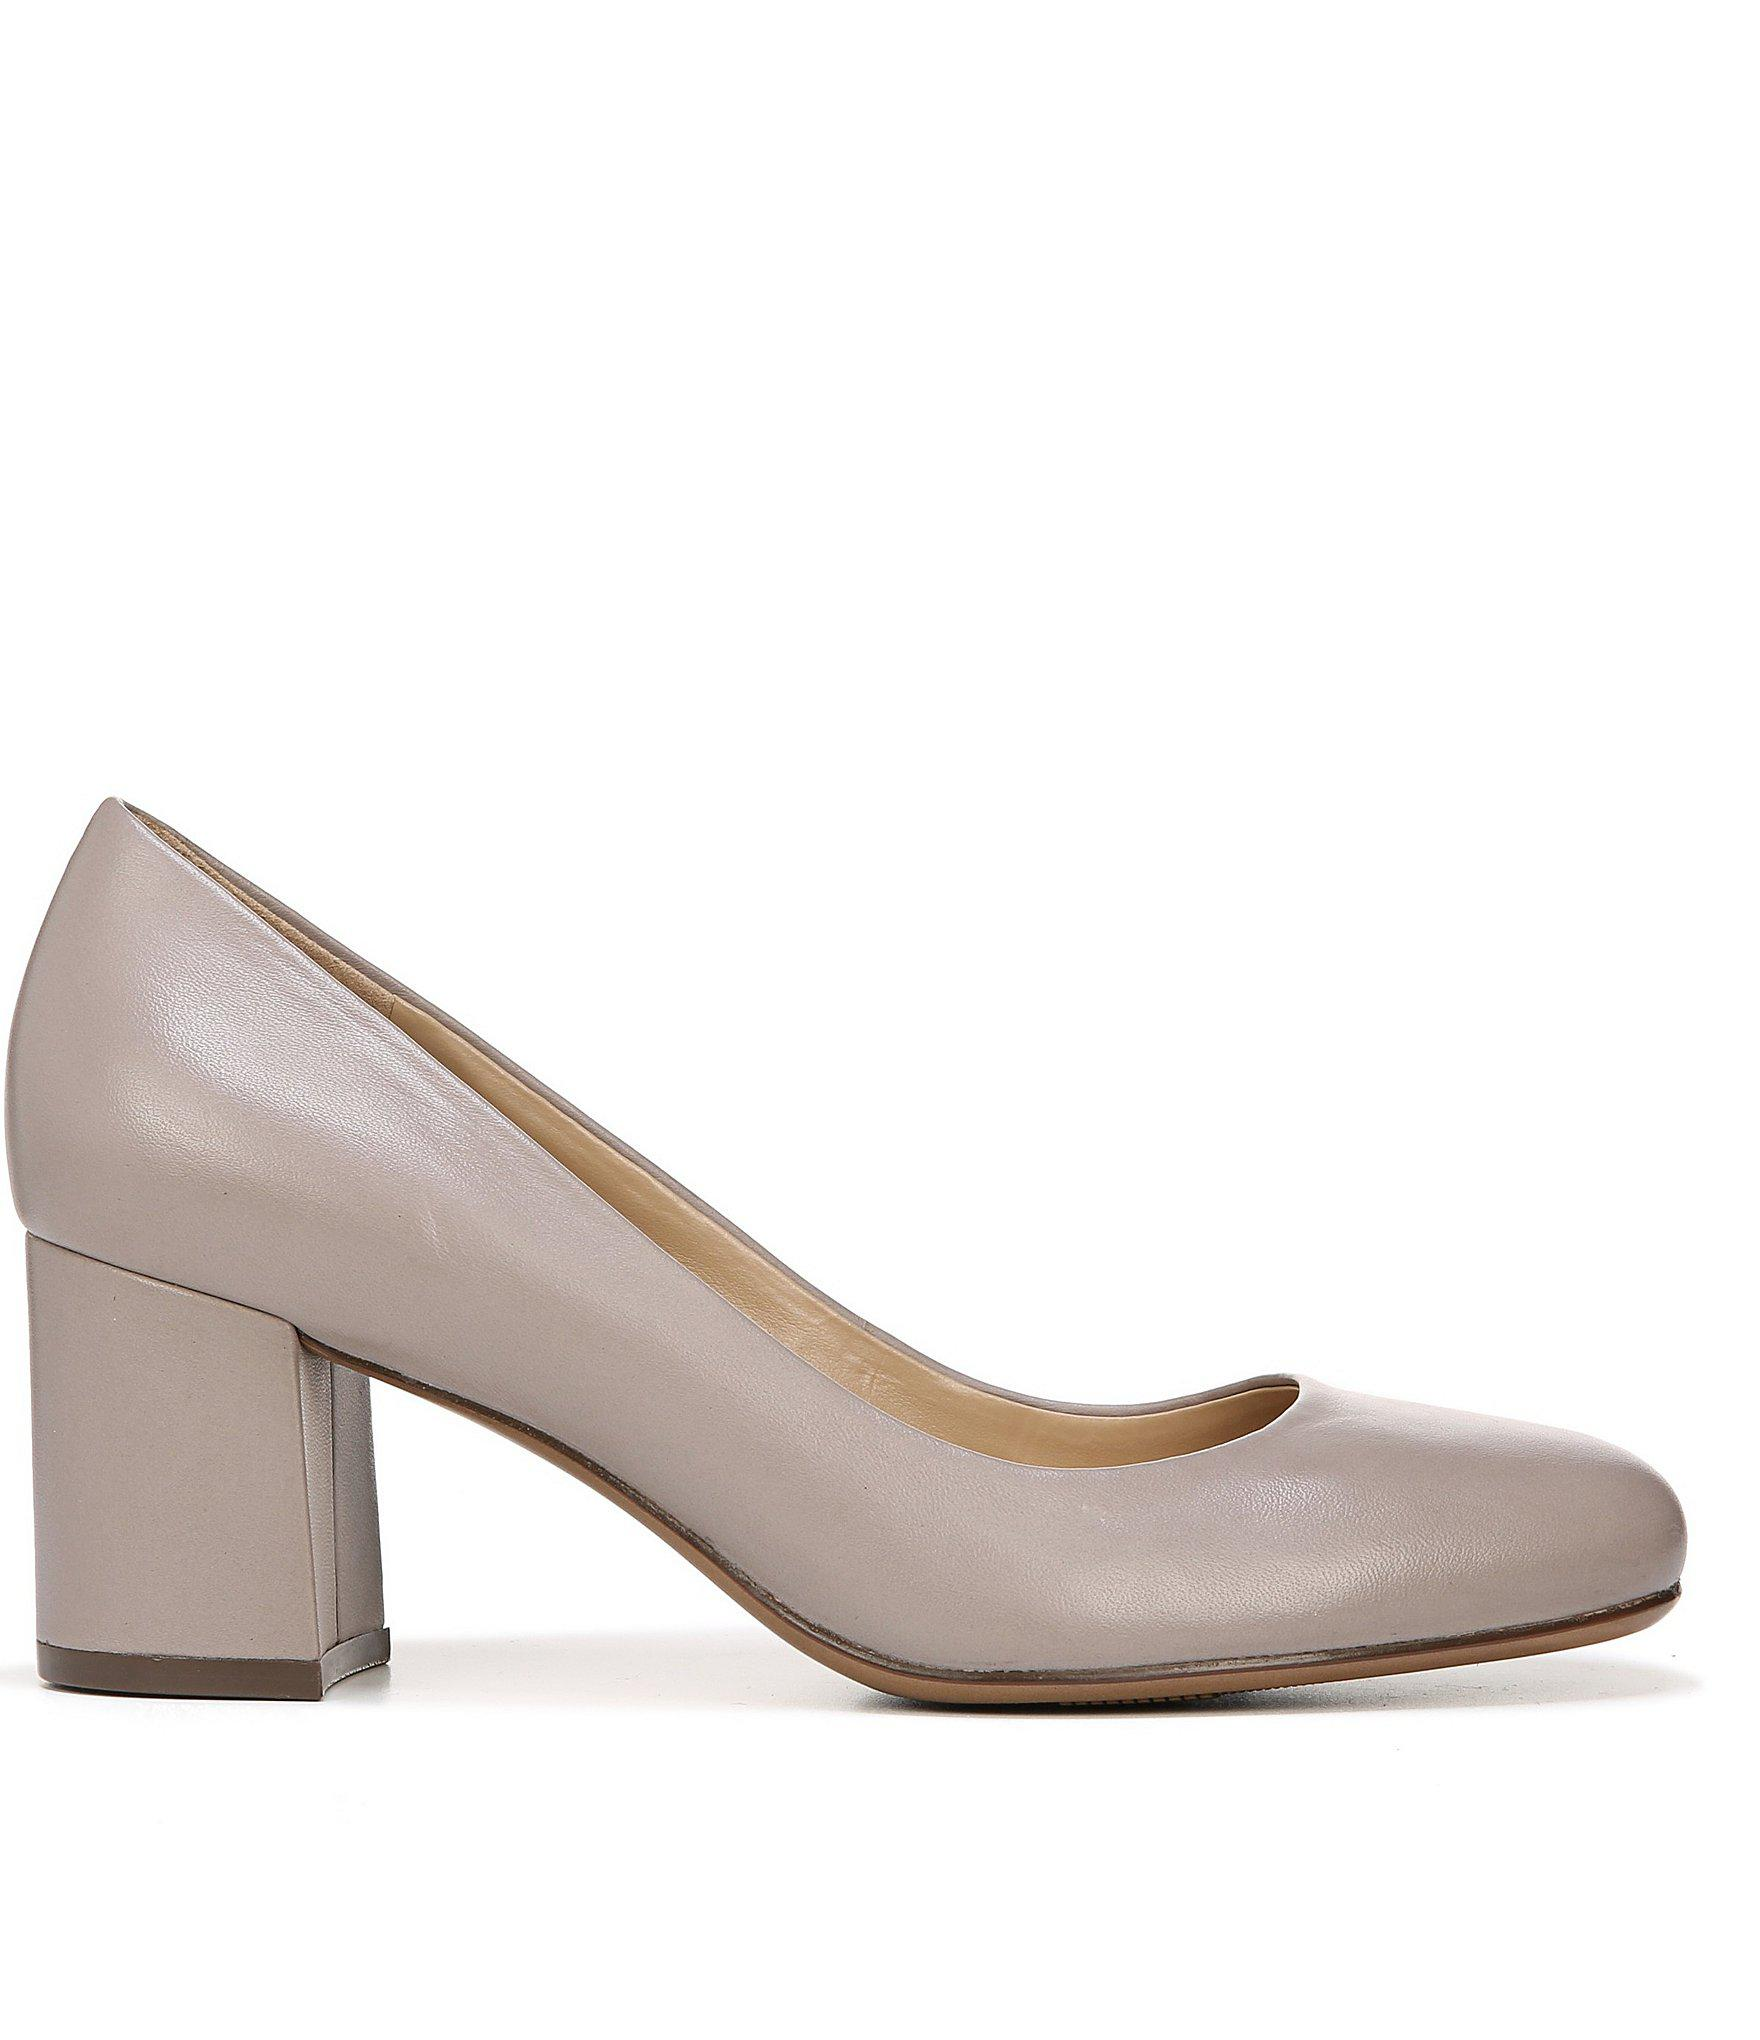 3ad763bf2e Naturalizer - Multicolor Whitney Leather Slip-on Block Heel Pumps - Lyst.  View fullscreen